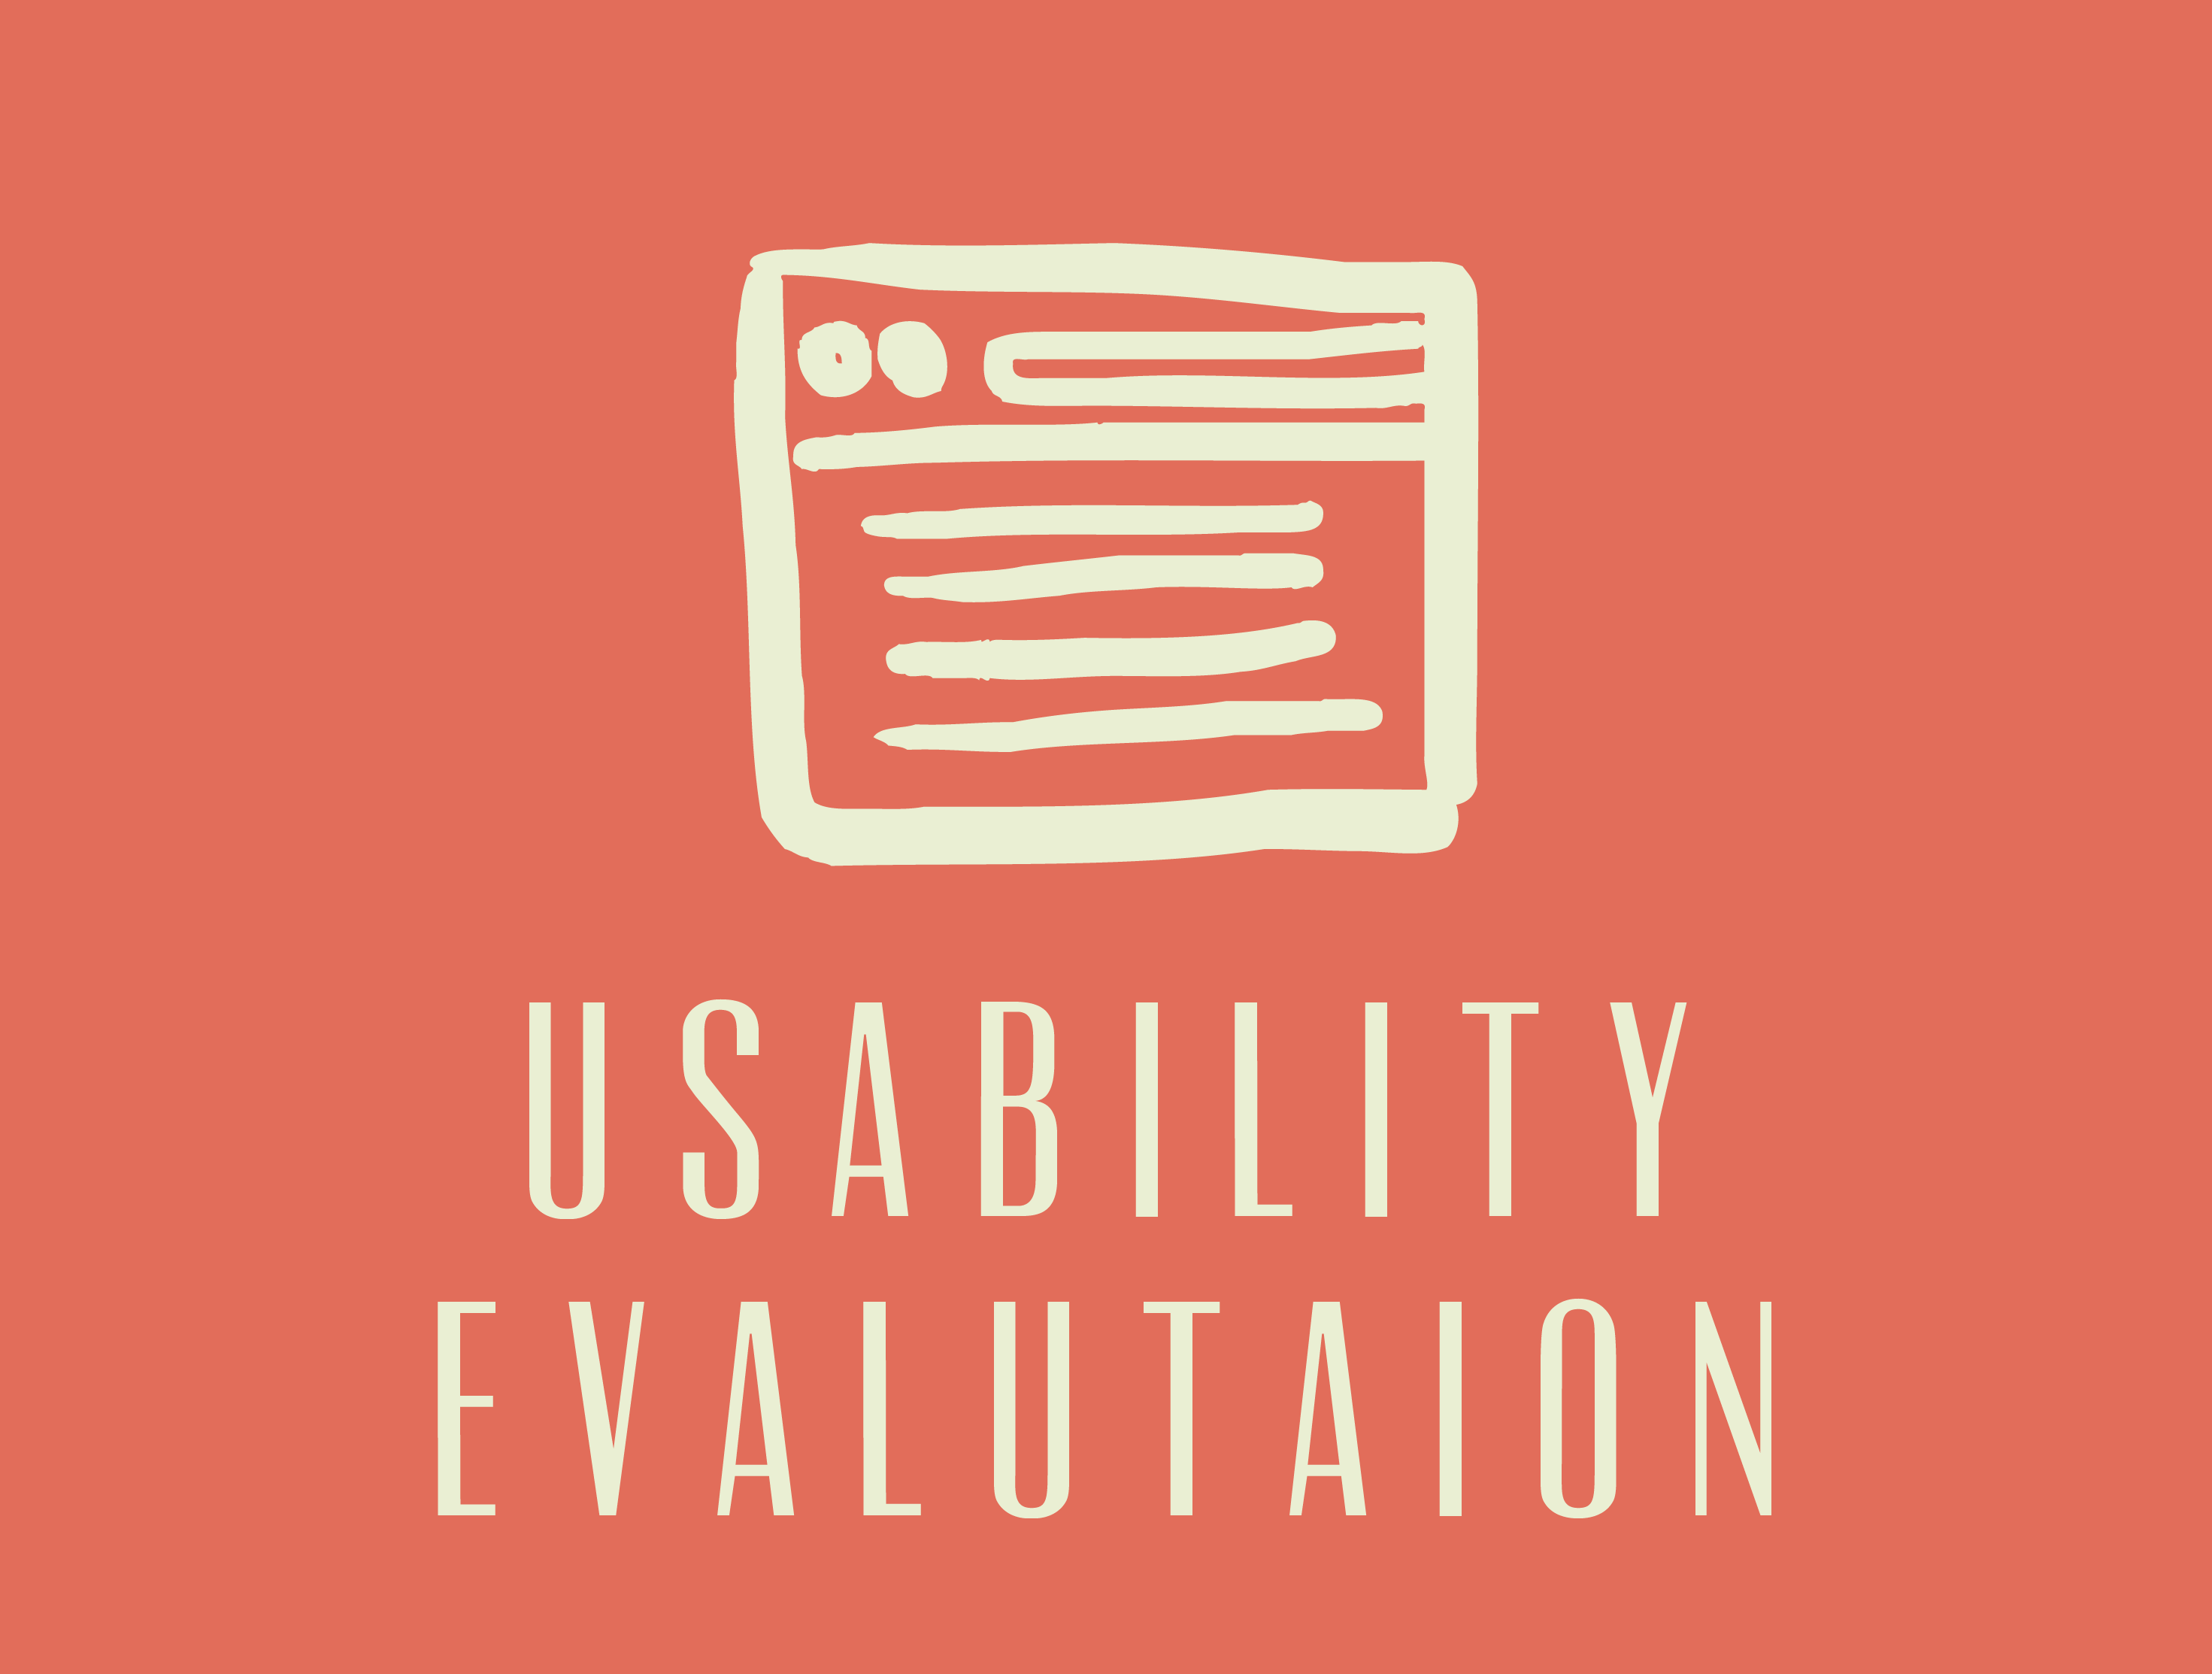 Usability Evaluation with wireframe icon